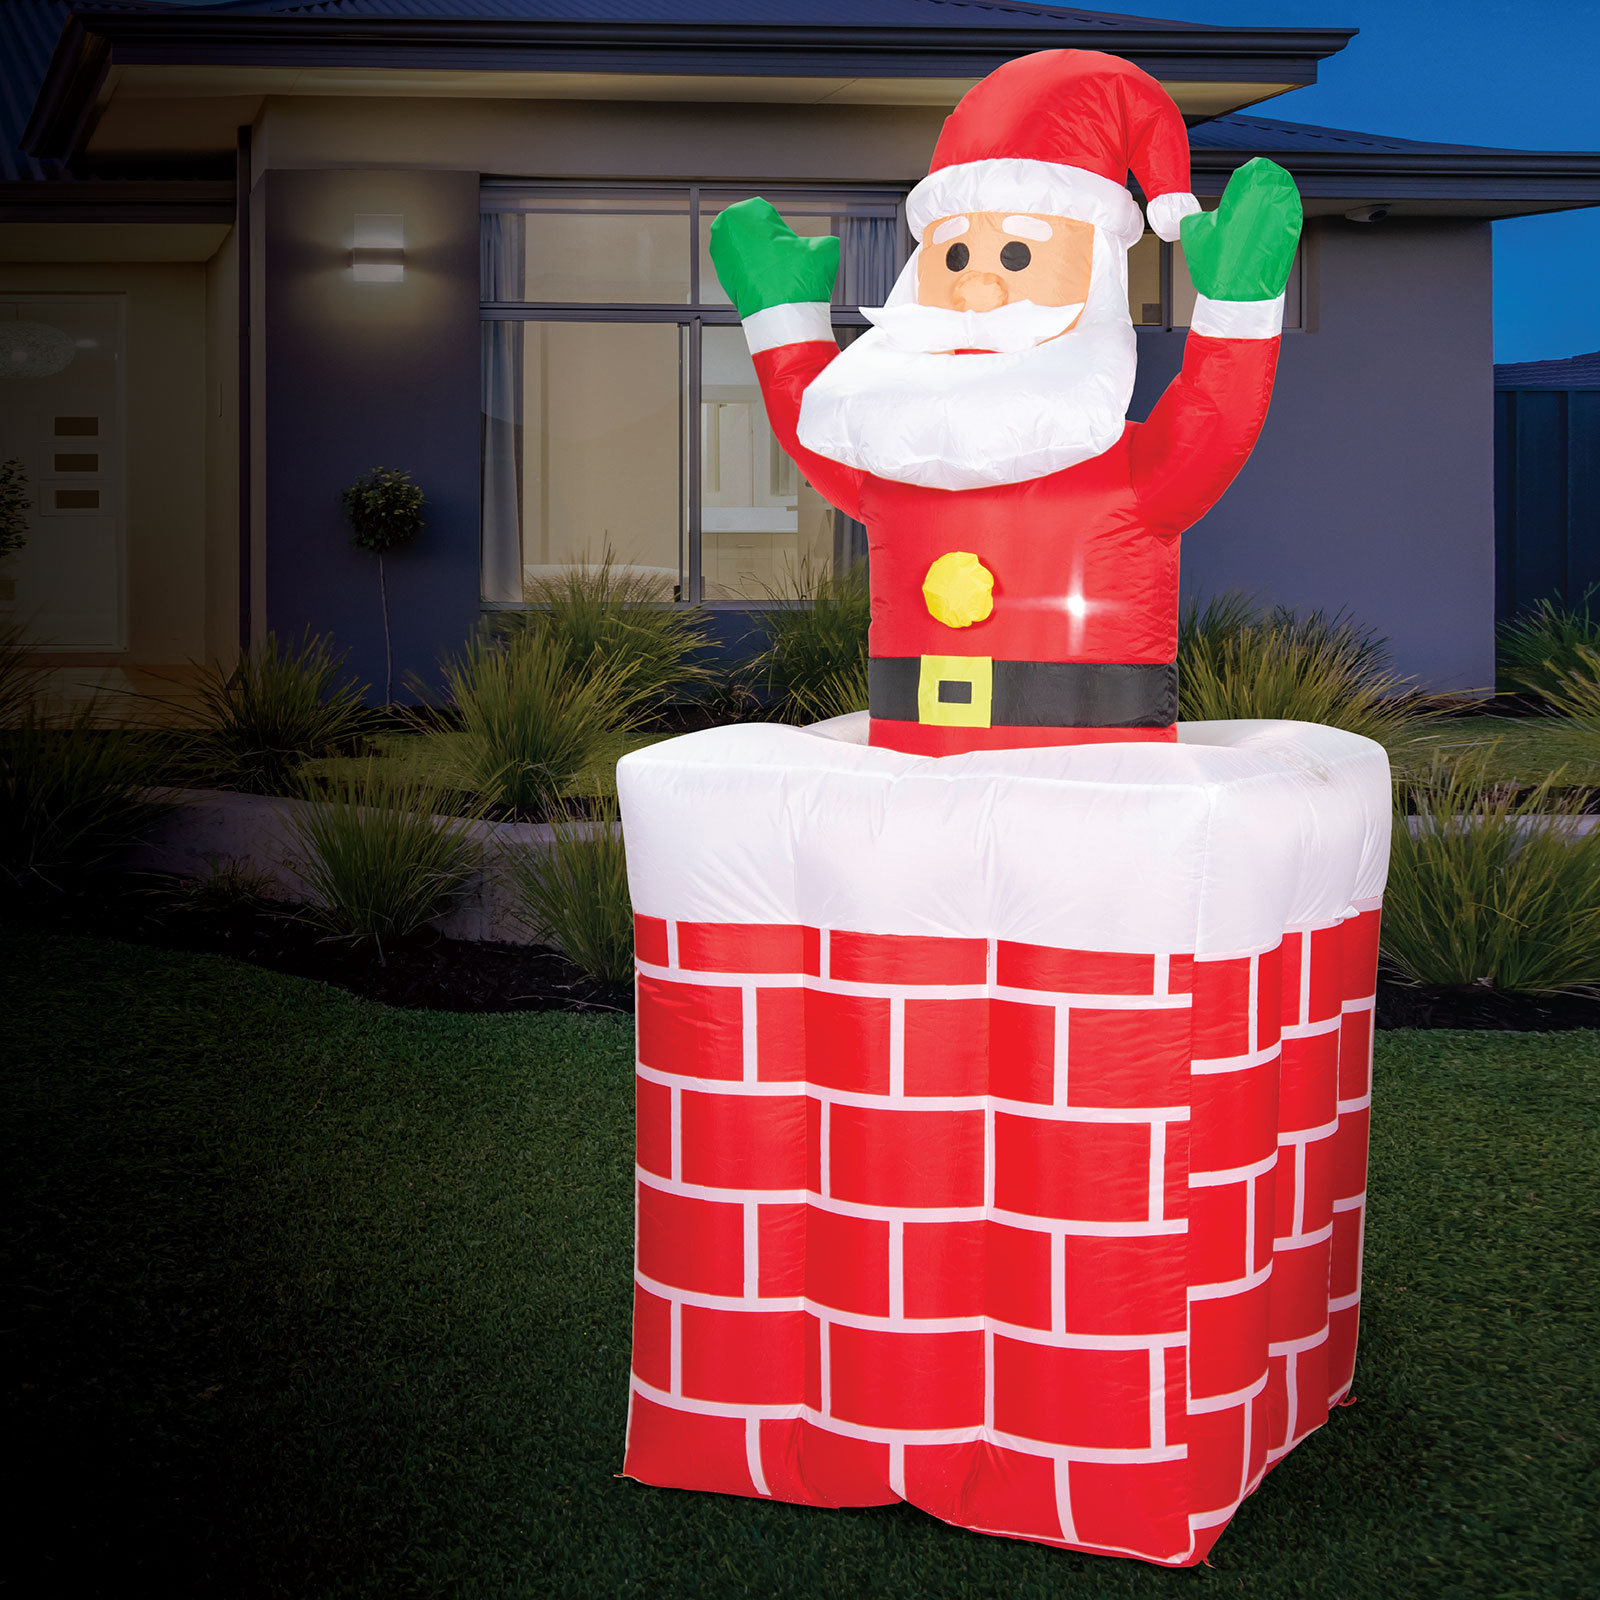 AIRPOWER SANTA Pop Up Chimney Christmas Inflatable Decor Lights Up Indoor 1.8m